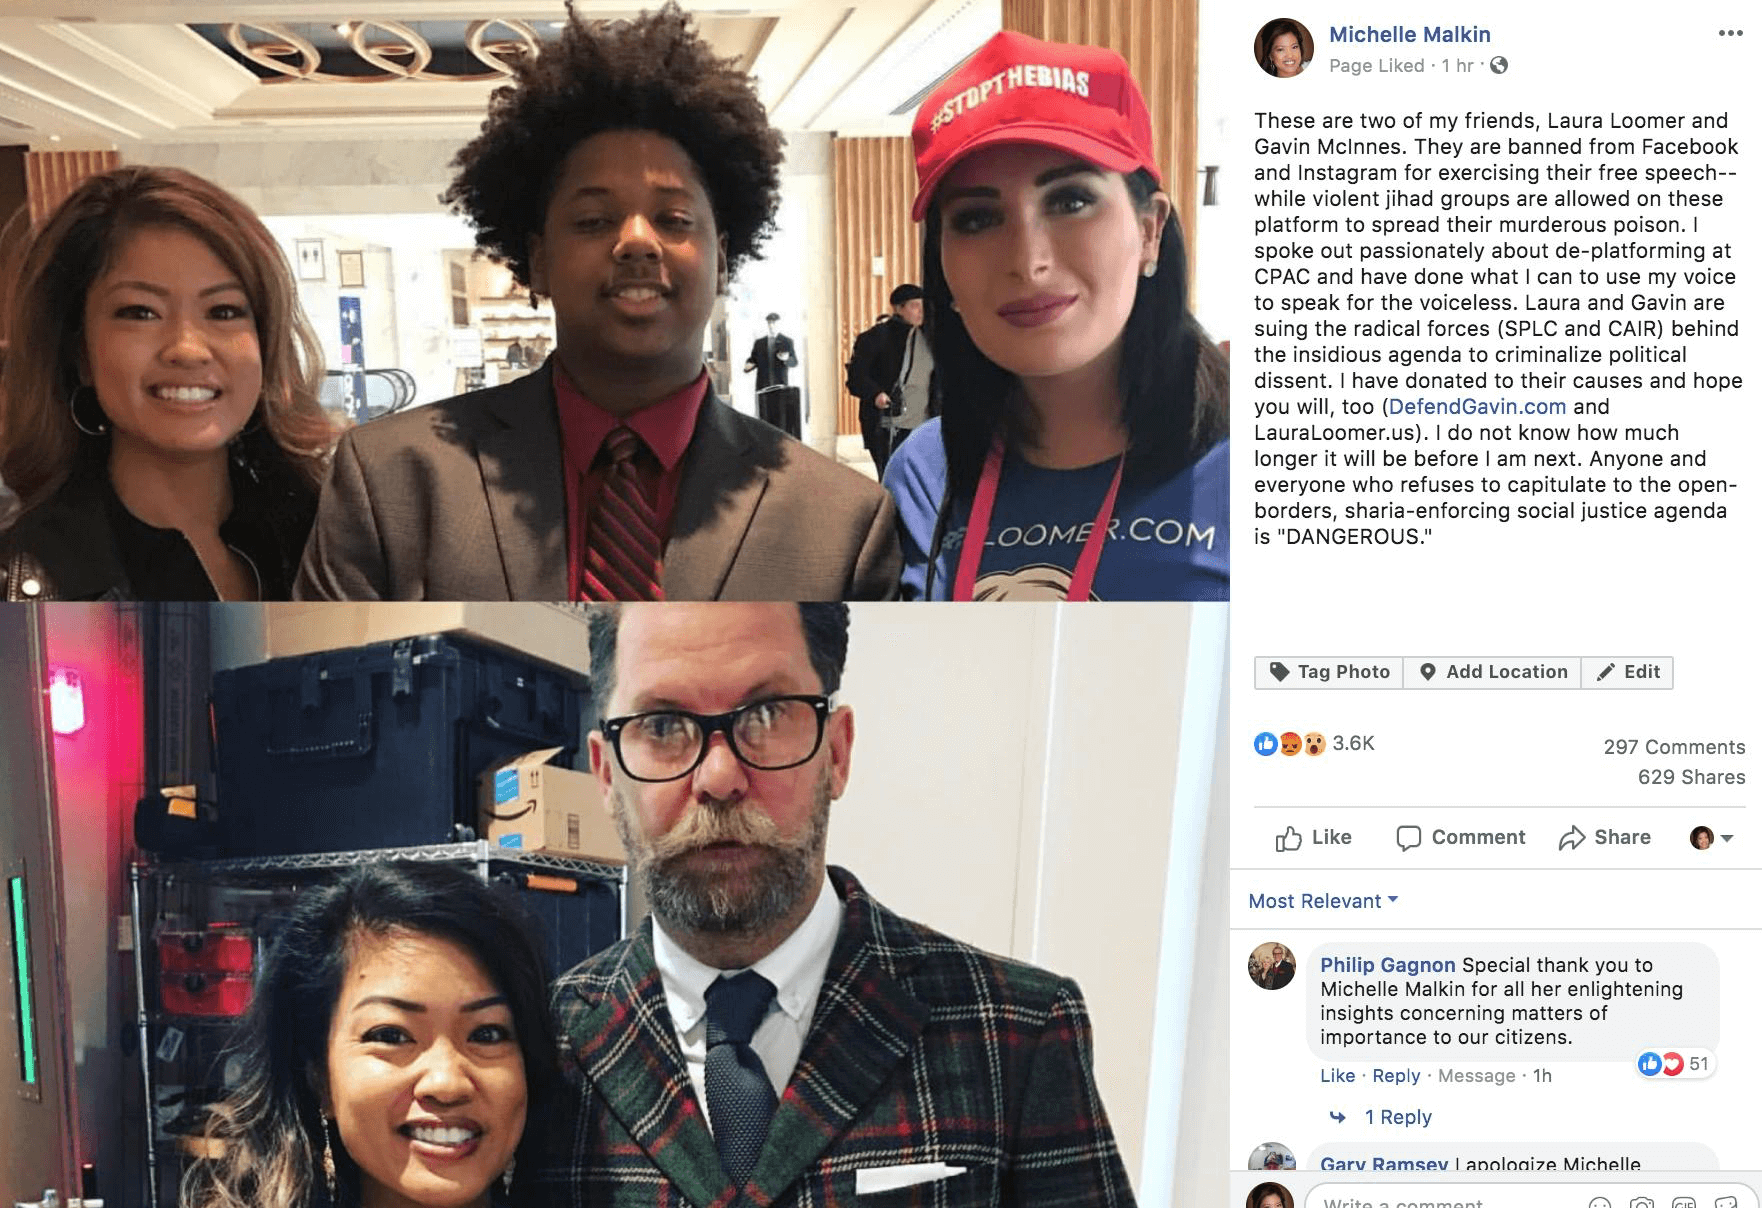 The photos of Laura Loomer and Gavin McInnes that Michelle Malkin posted to Facebook.